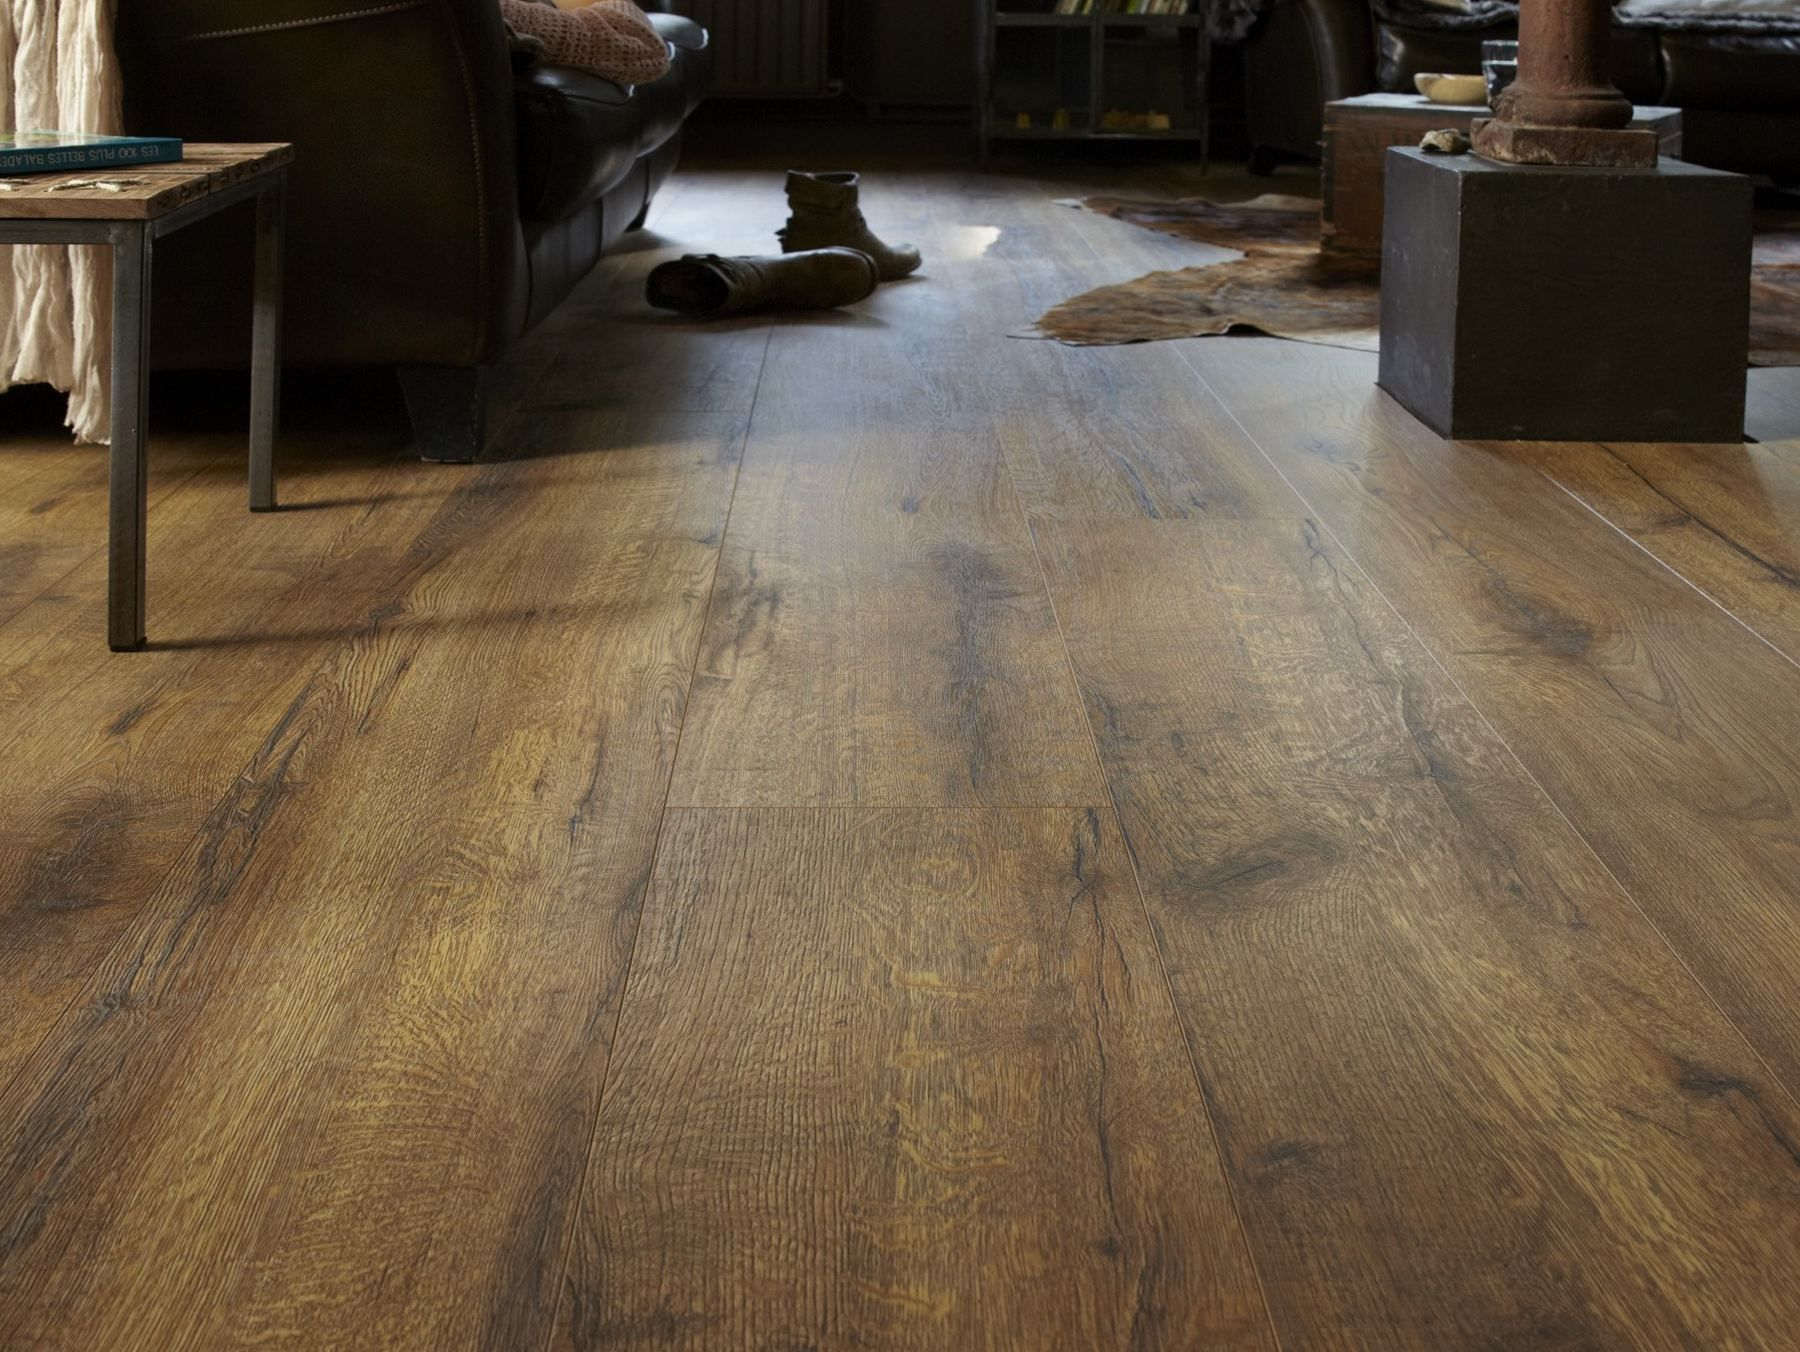 Laminate floor tiles LONG BOARDS Laminate Collection by TARKETT ...